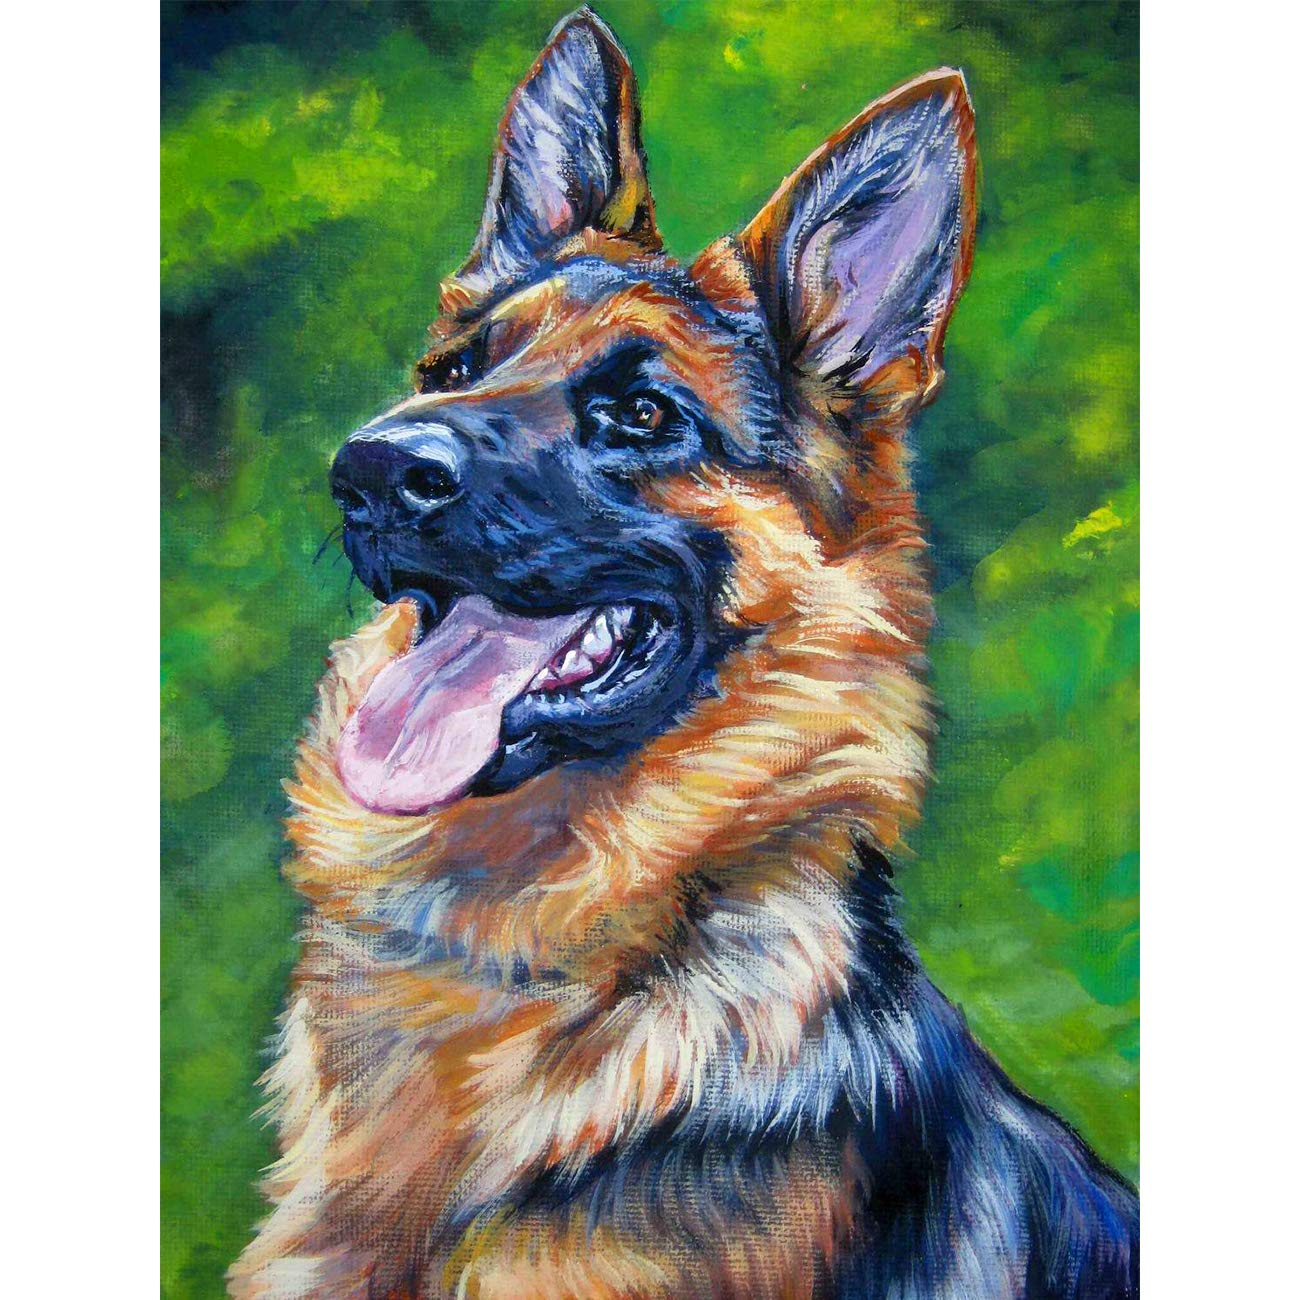 5D Diamond Painting German Shepherd Full Drill by Number Kits, SKRYUIE DIY Rhinestone Pasted Paint with Diamond Set Arts Craft Decorations (12x16inch)